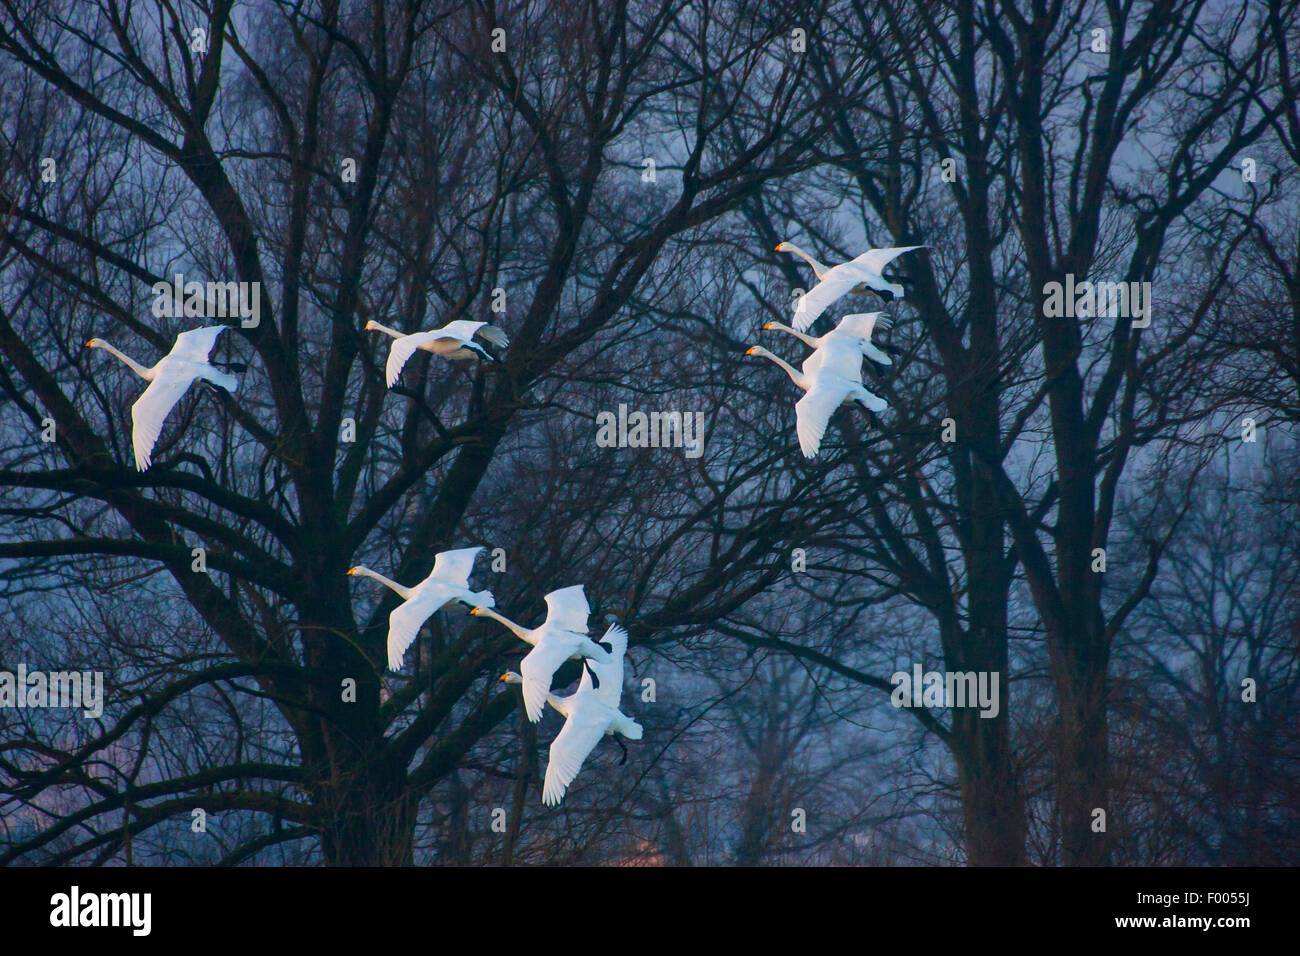 whooper swan (Cygnus cygnus), eight whooper swans on the approach before a grove, Switzerland, Sankt Gallen - Stock Image